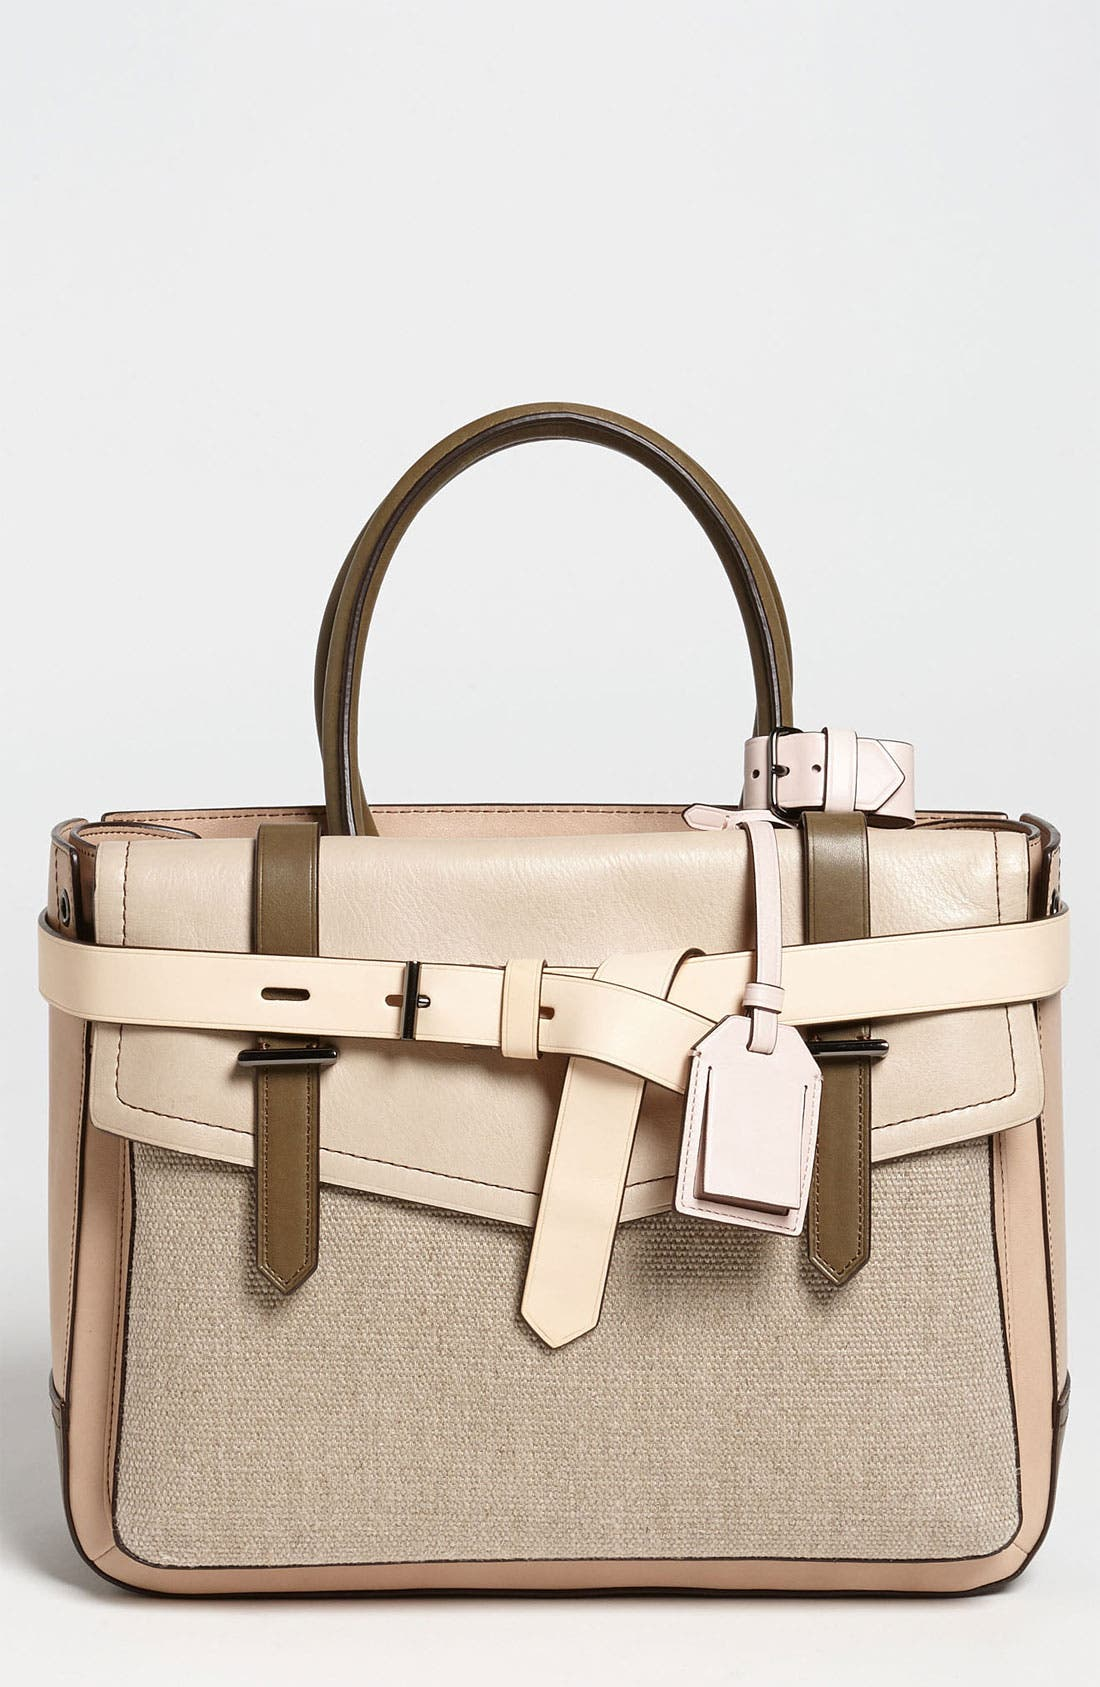 Main Image - Reed Krakoff 'Boxer' Colorblocked Leather Satchel